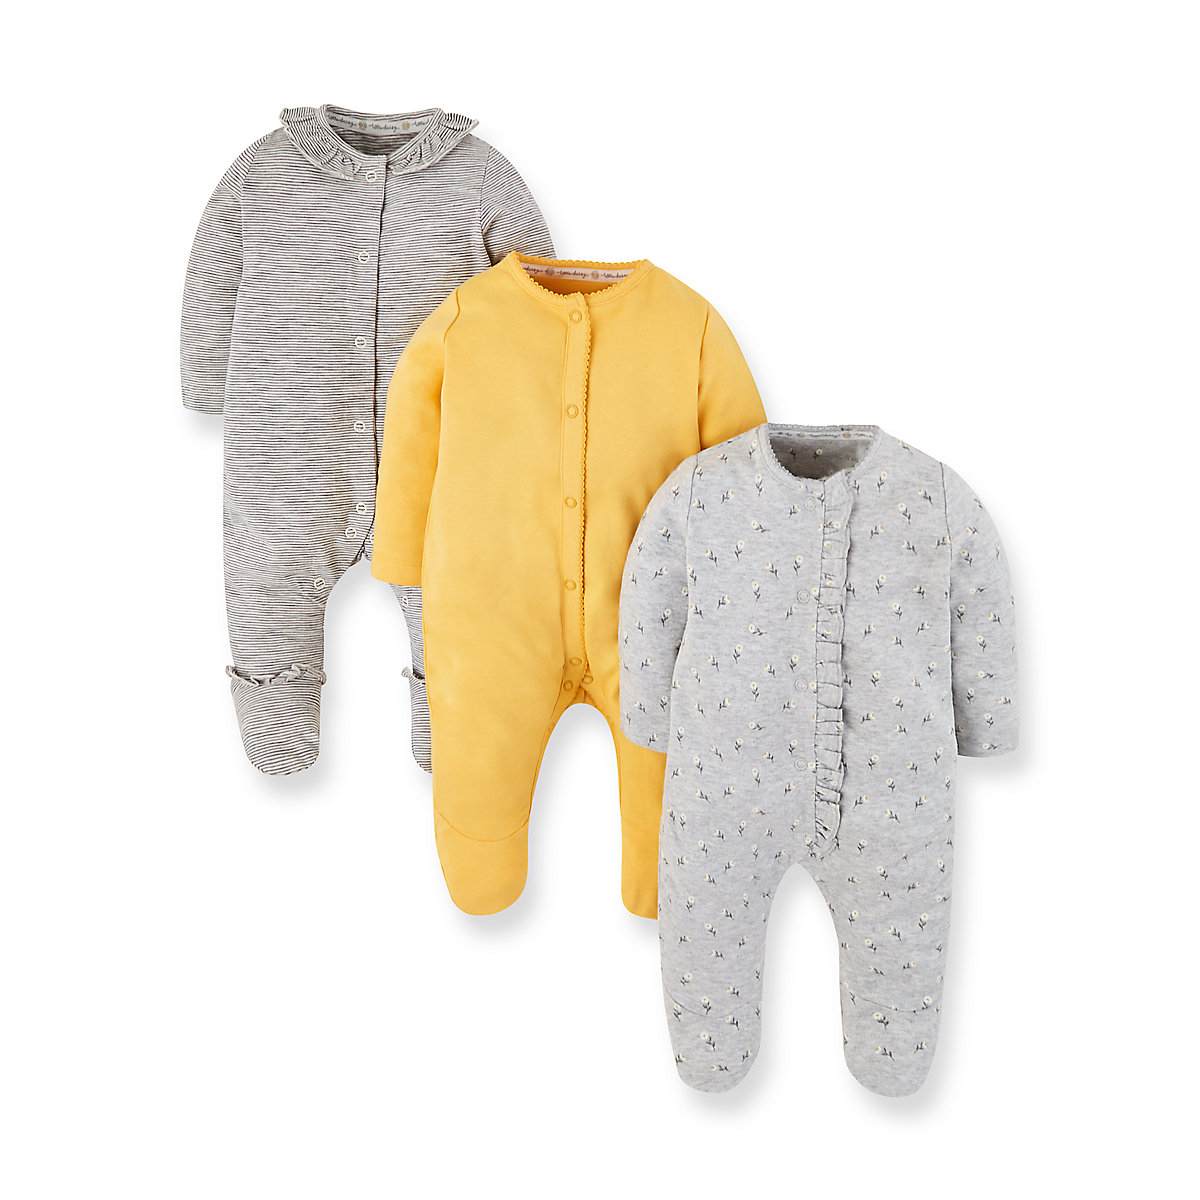 daisy. stripe and yellow sleepsuits - 3 pack